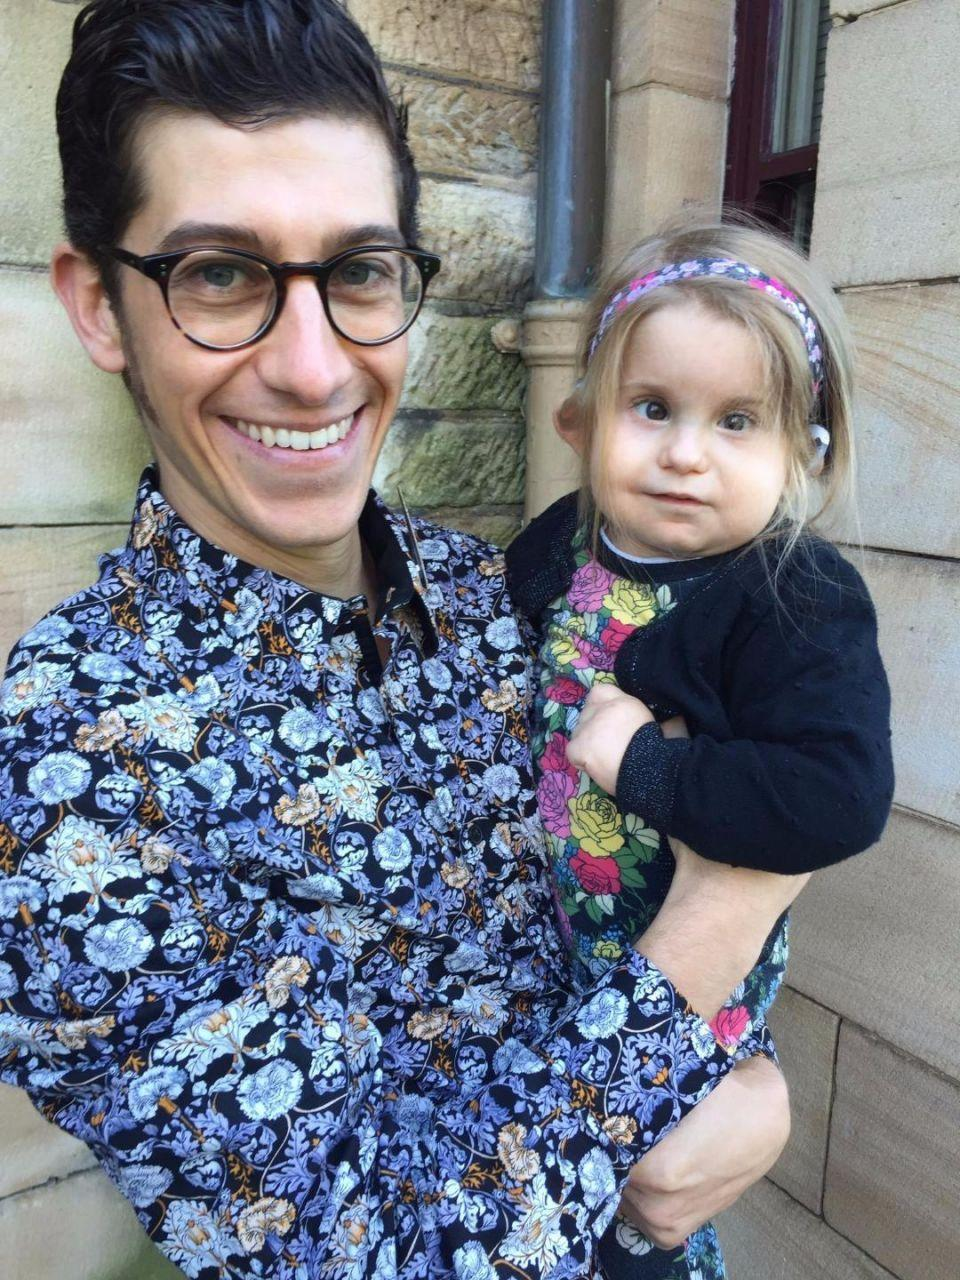 Daddy-daughter florals are so hot right now. Source: Supplied